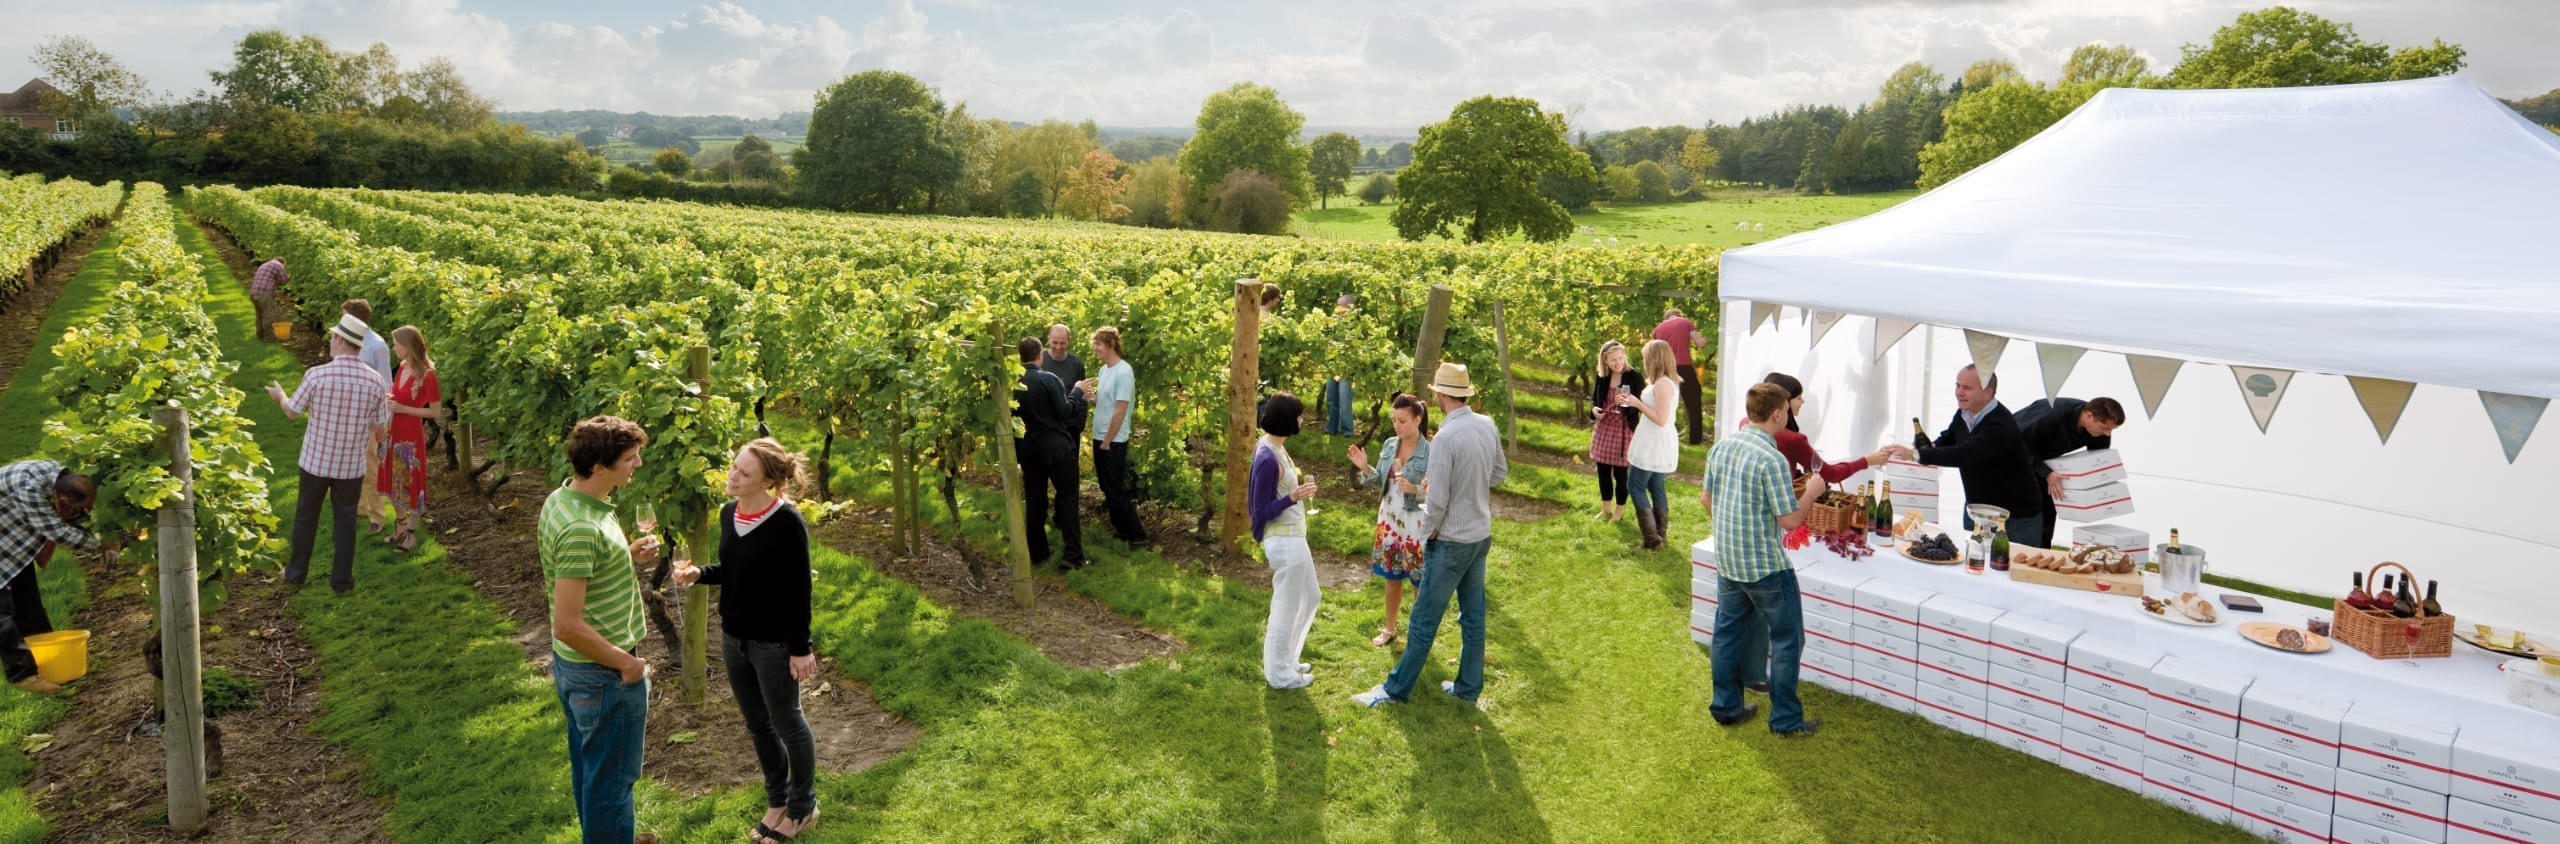 People talking at a vineyard